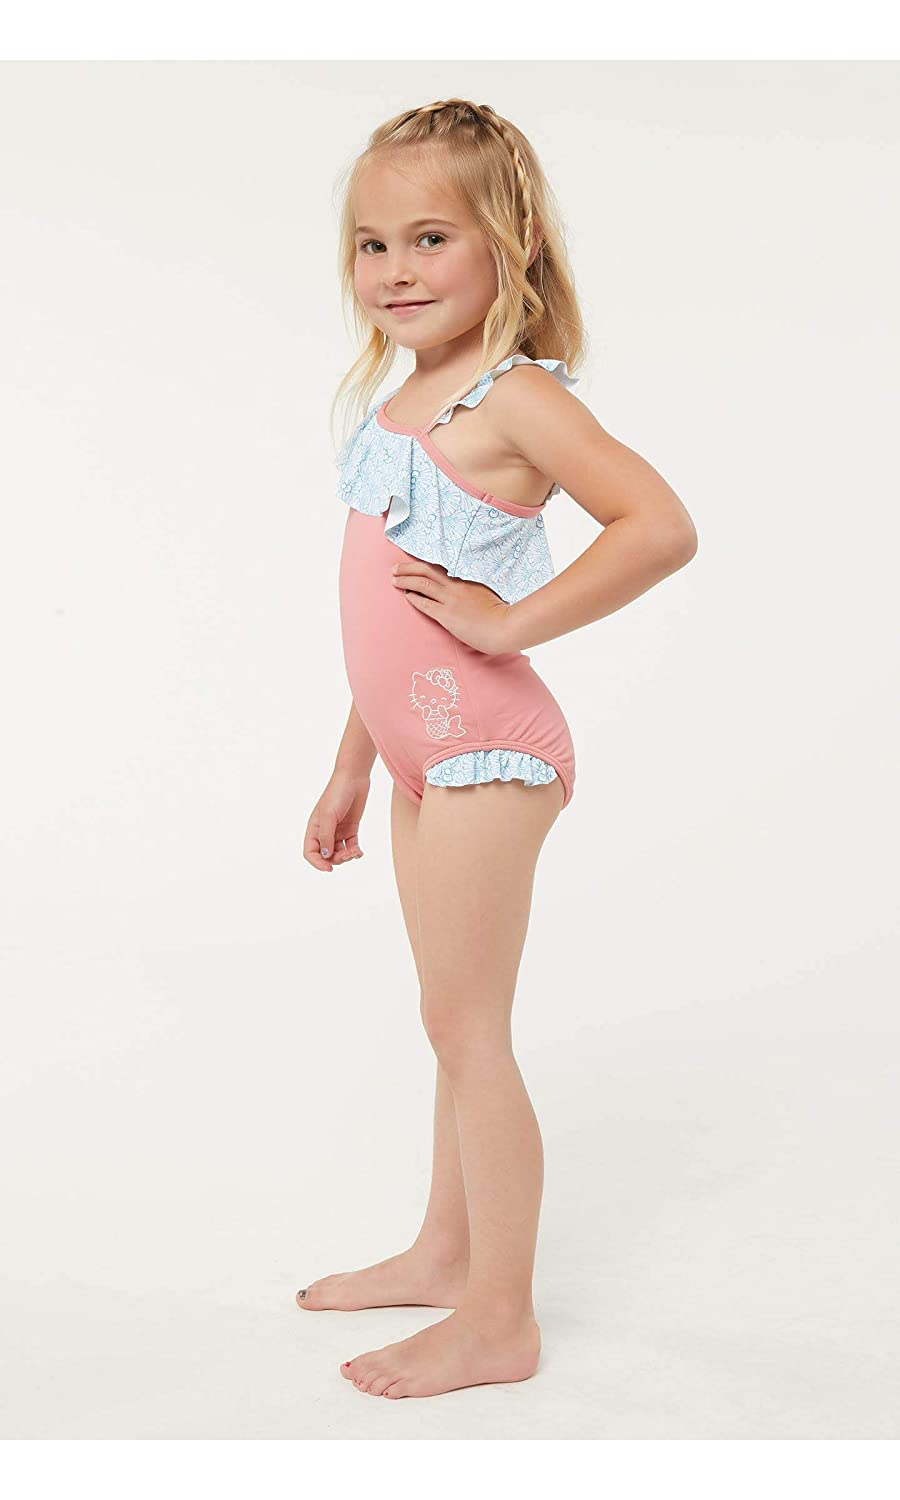 e8ea956074 Amazon.com: O'Neill Kids Womens Hello Kitty Shelly One-Piece Swimsuit  (Toddler/Little Kids): Clothing